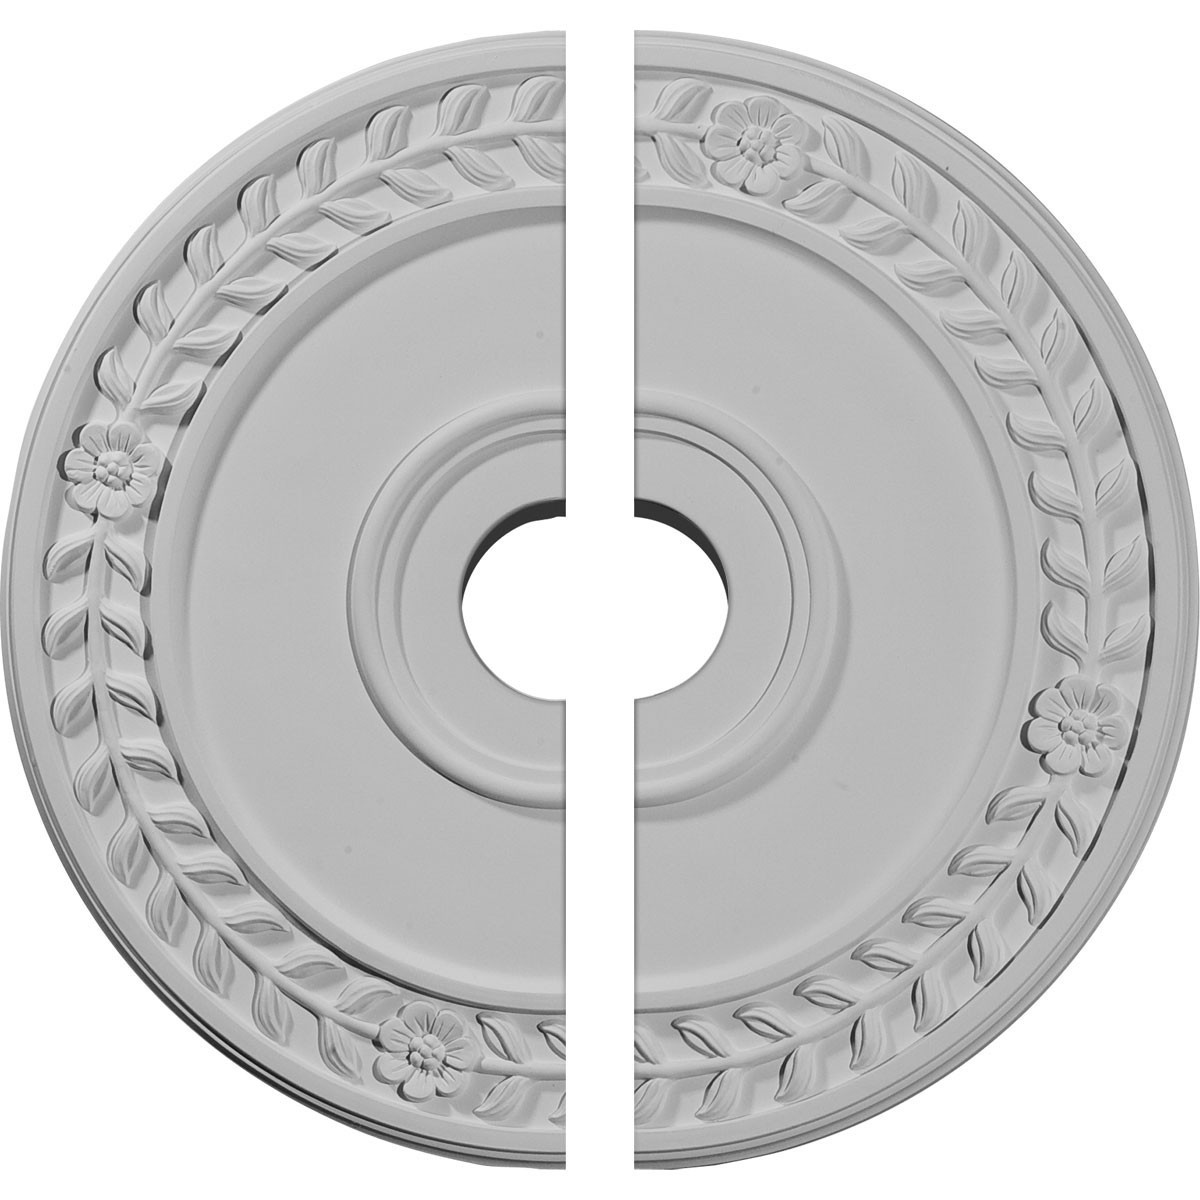 "EM-CM21WR2 - 21 1/8""OD x 3 5/8""ID x 7/8""P Wreath Ceiling Medallion, Two Piece (Fits Canopies up to 6"")"